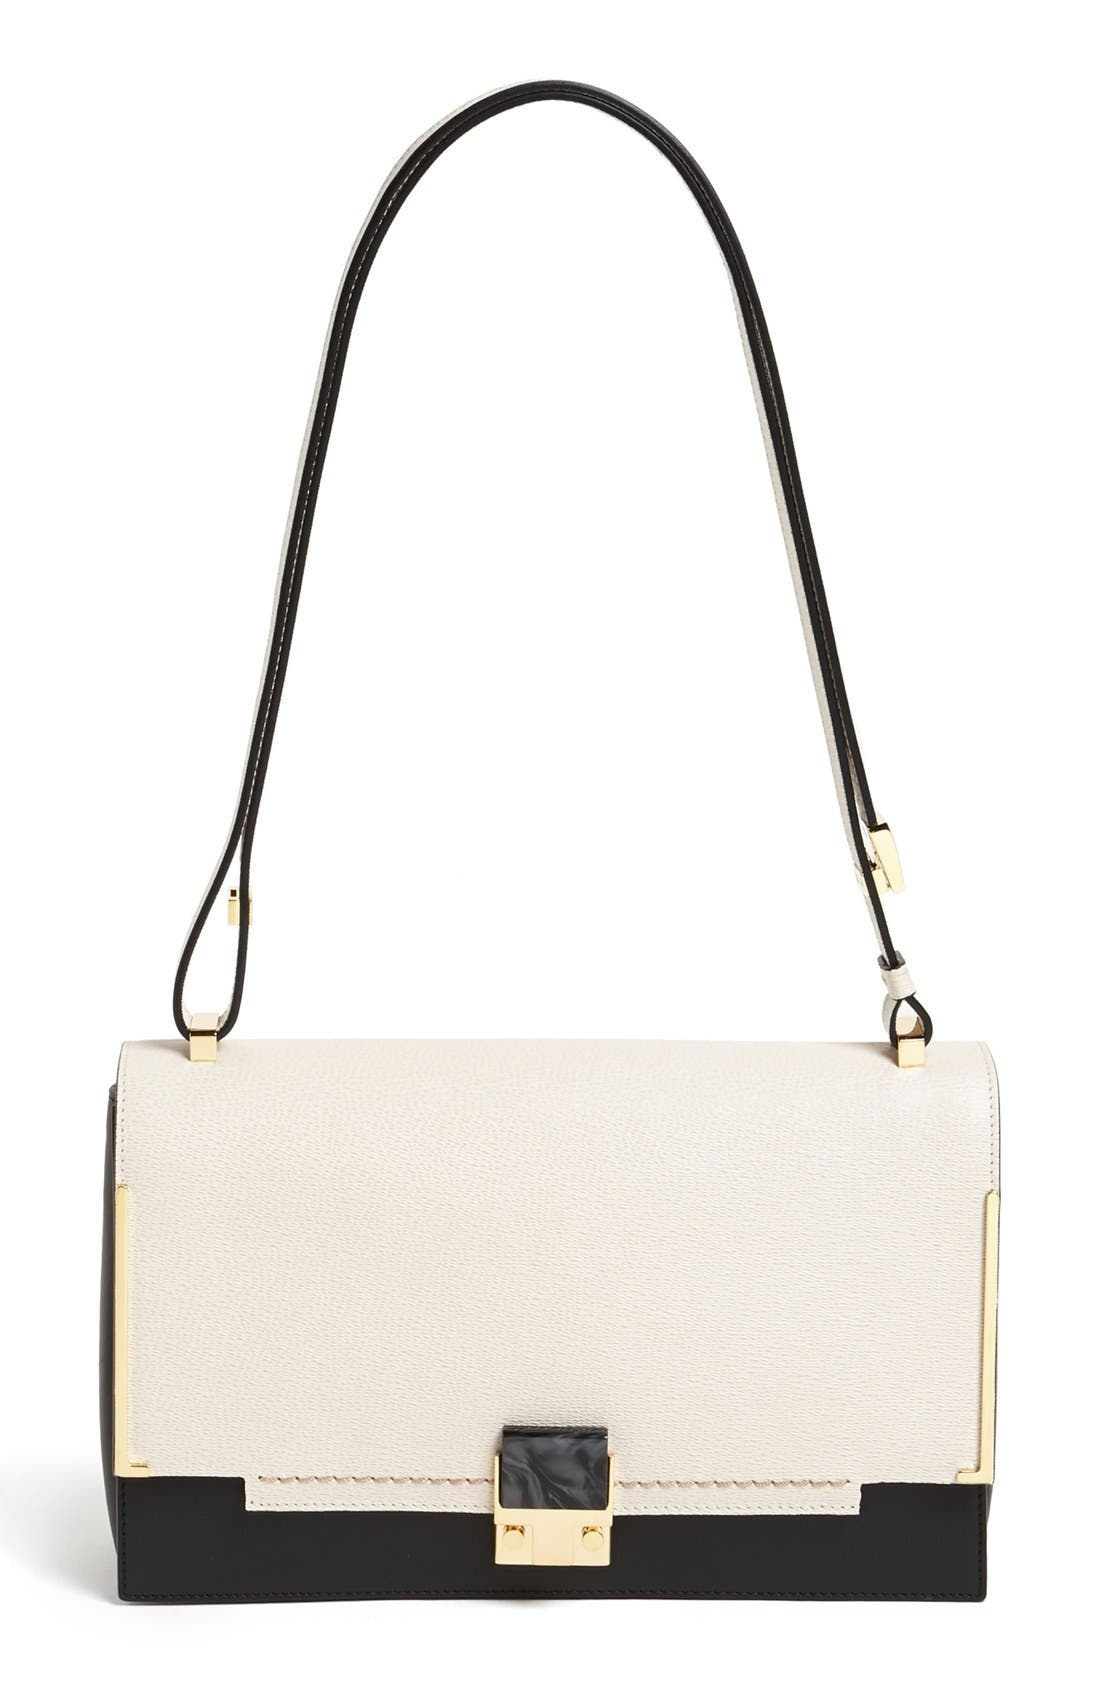 Main Image - Lanvin 'Medium Partition' Shoulder Bag